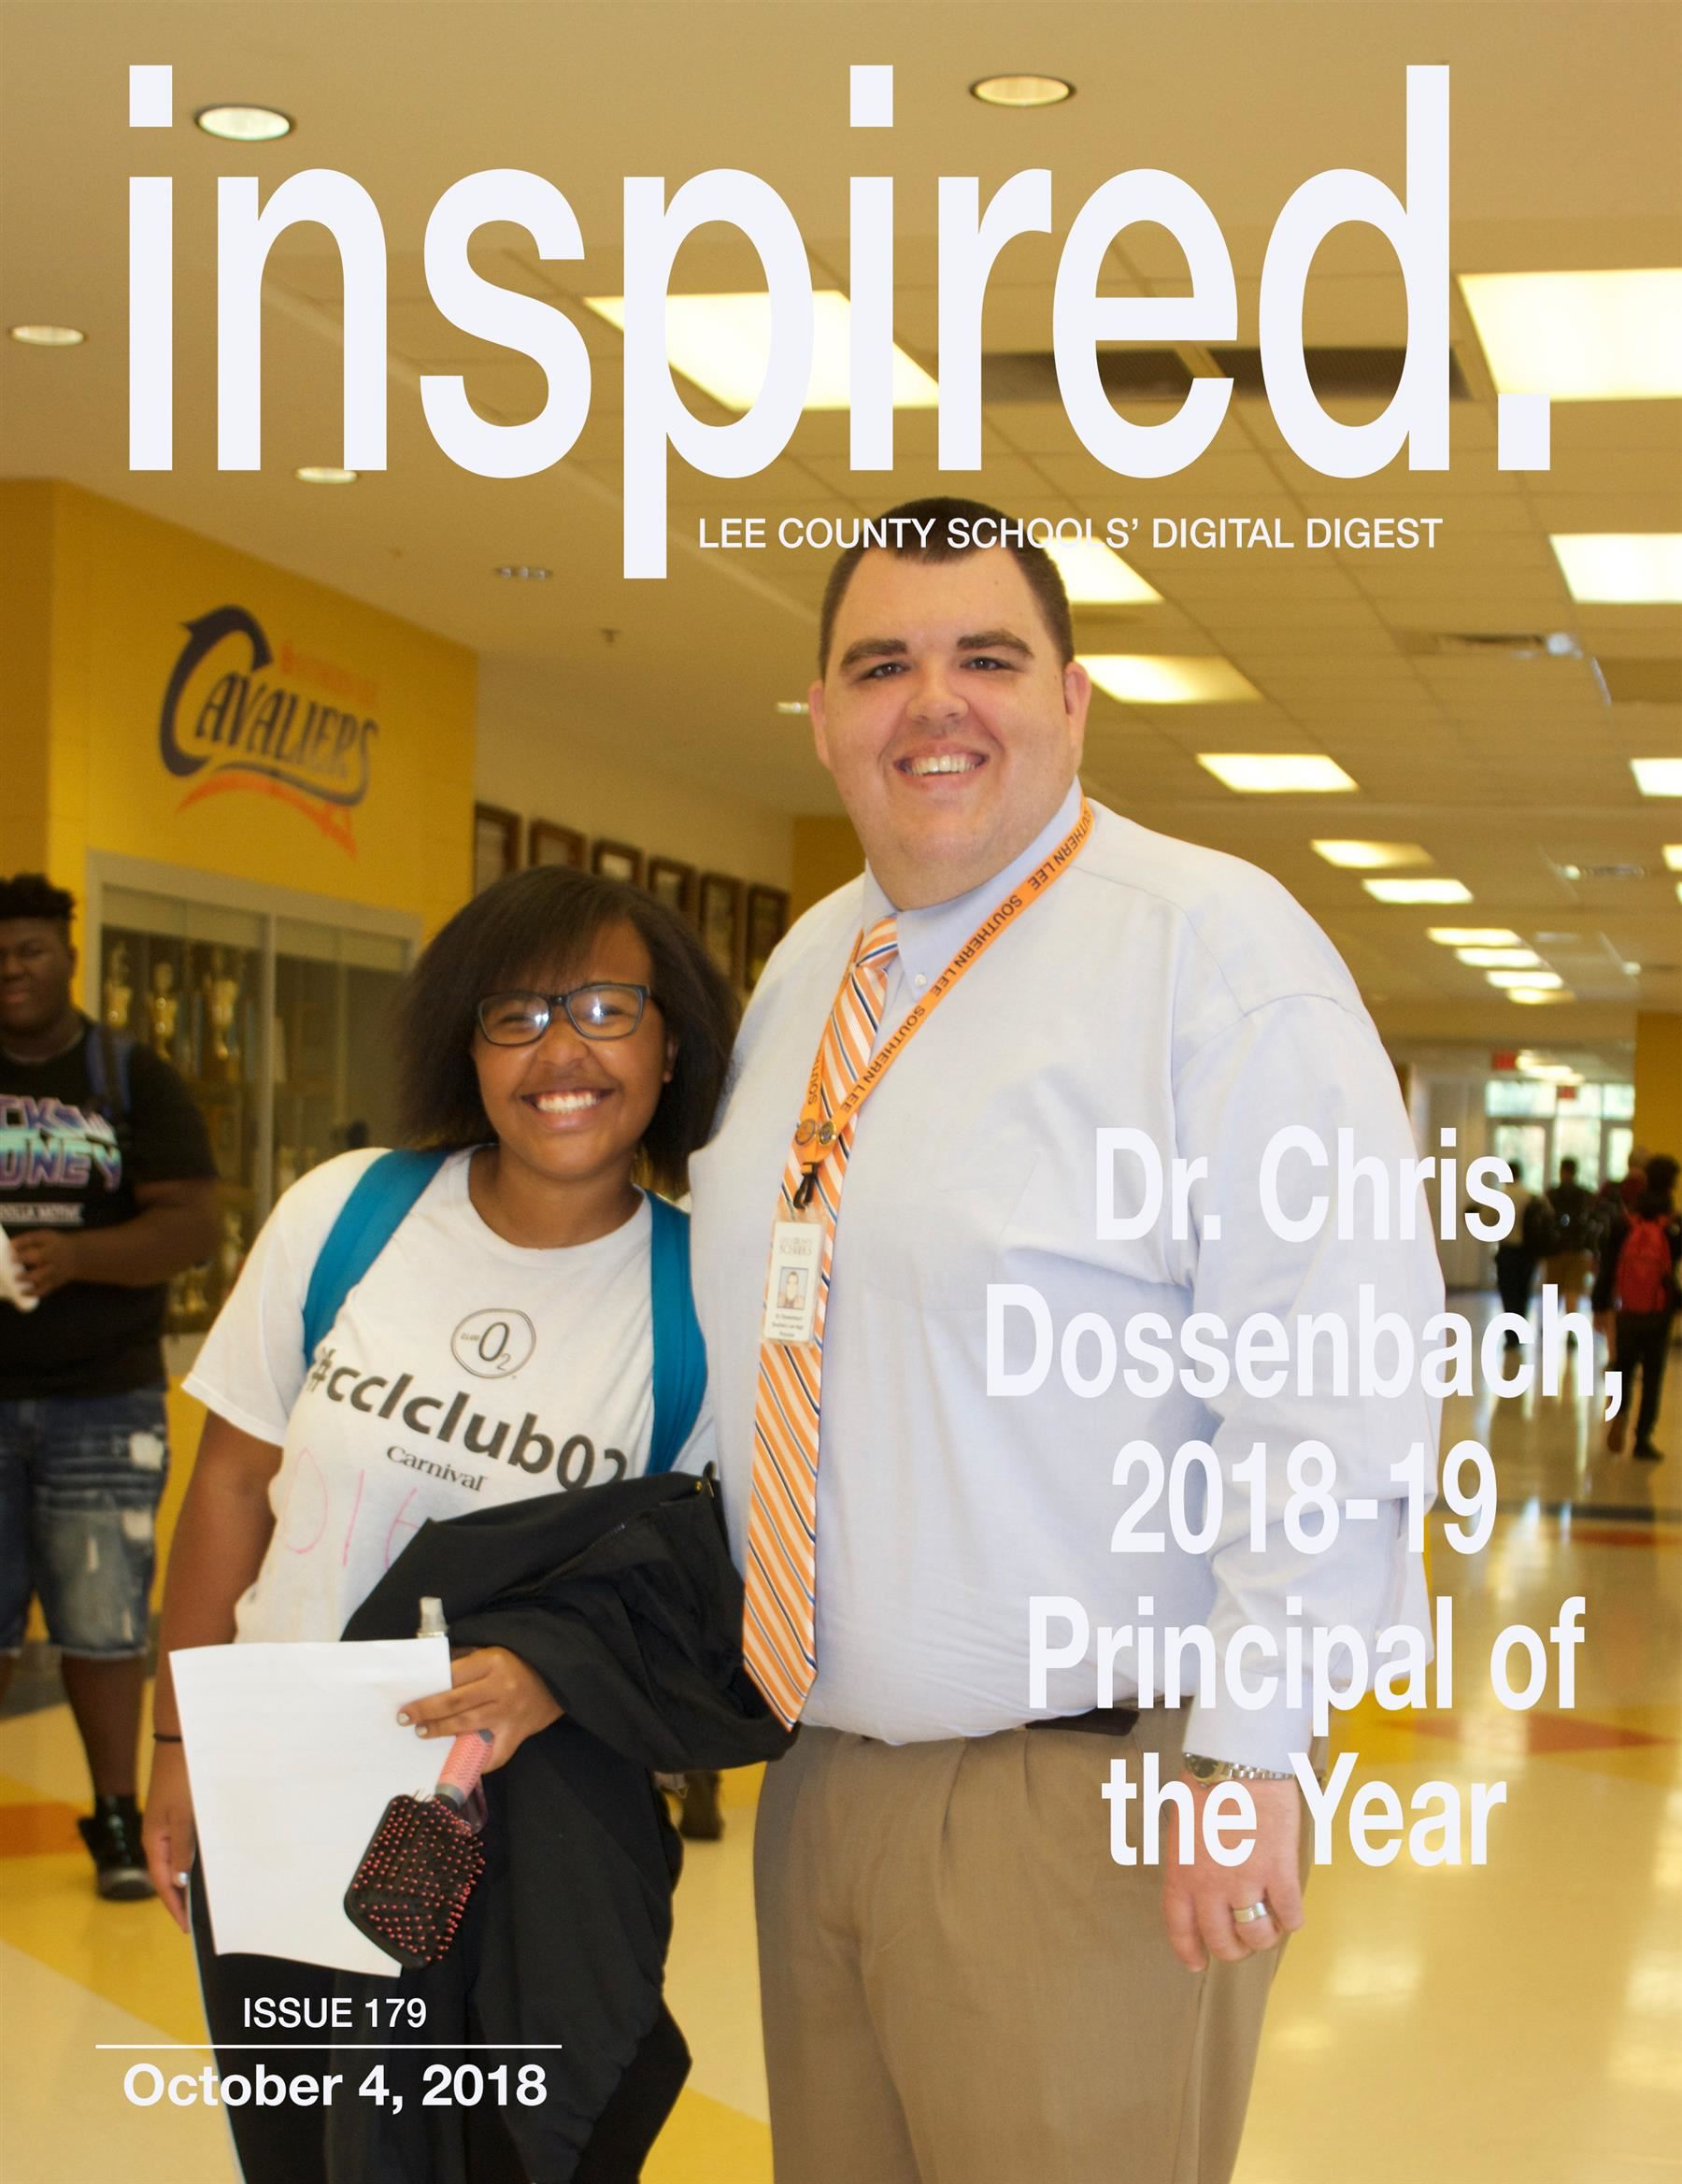 Dr. Chris Dossenbach, 2018-19 Principal of the Year